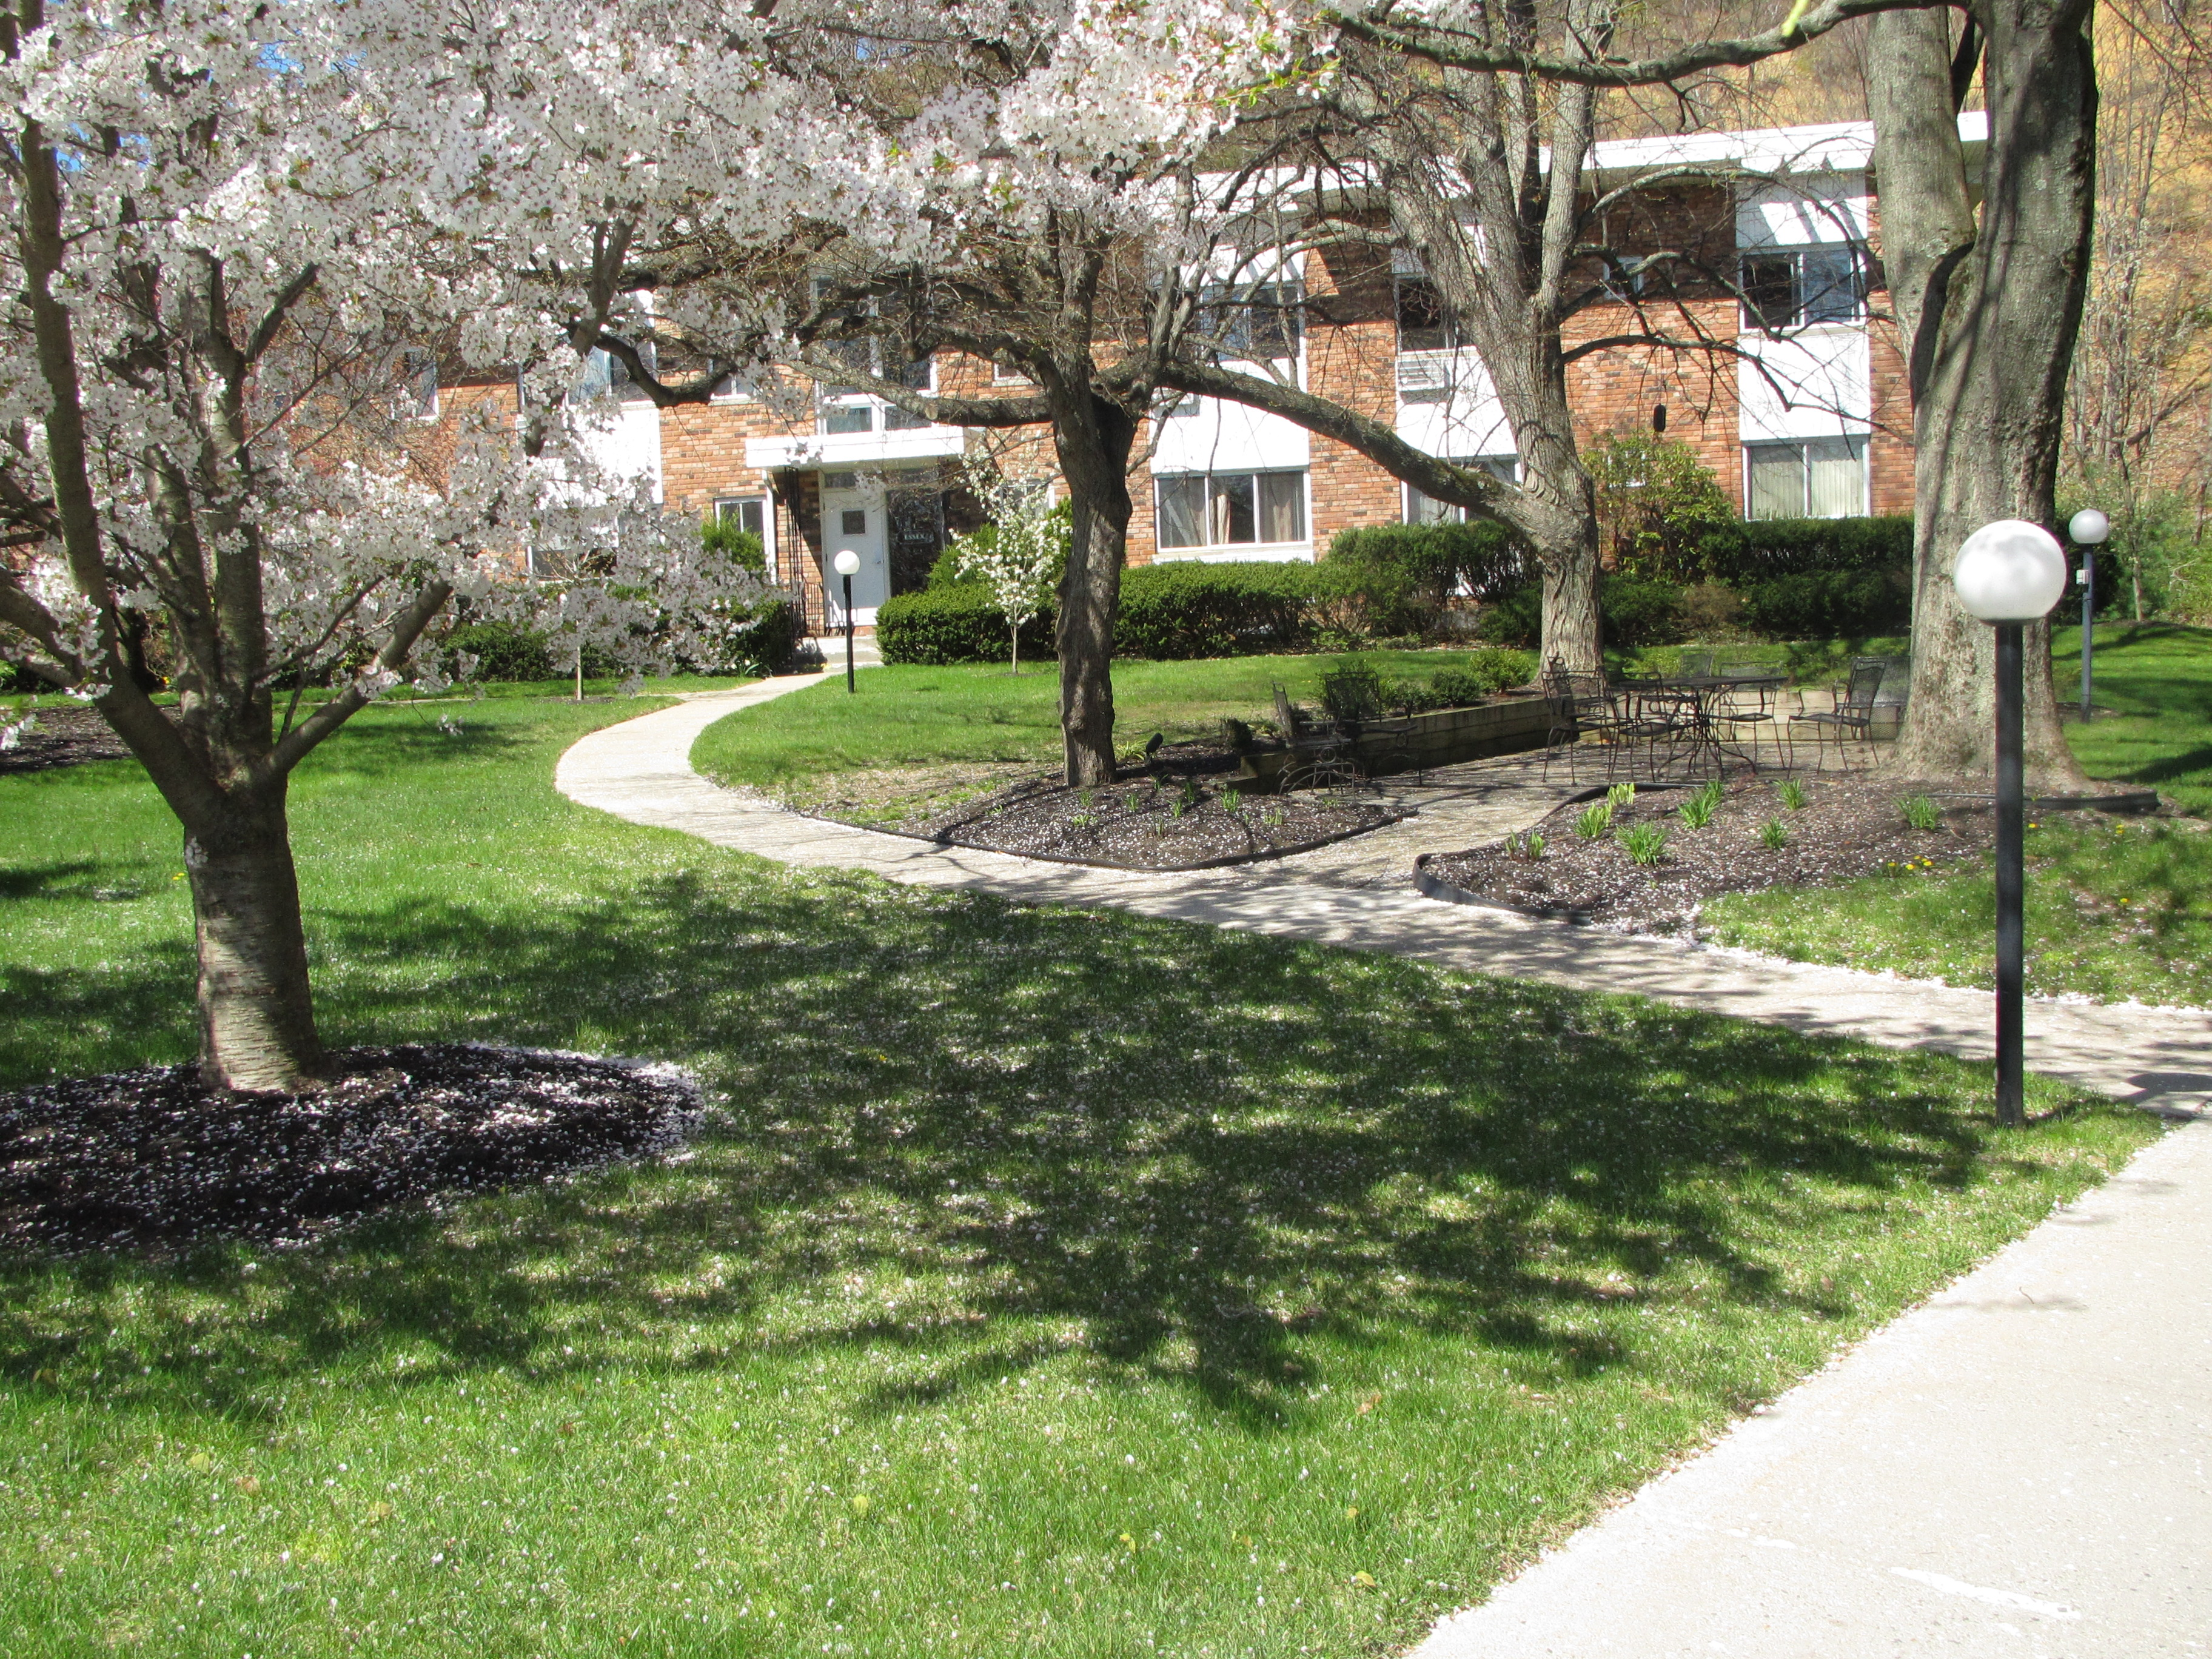 Apartment for Sale at Co-Op 200 Lexington Ave 10 10 H Oyster Bay, New York 11771 United States